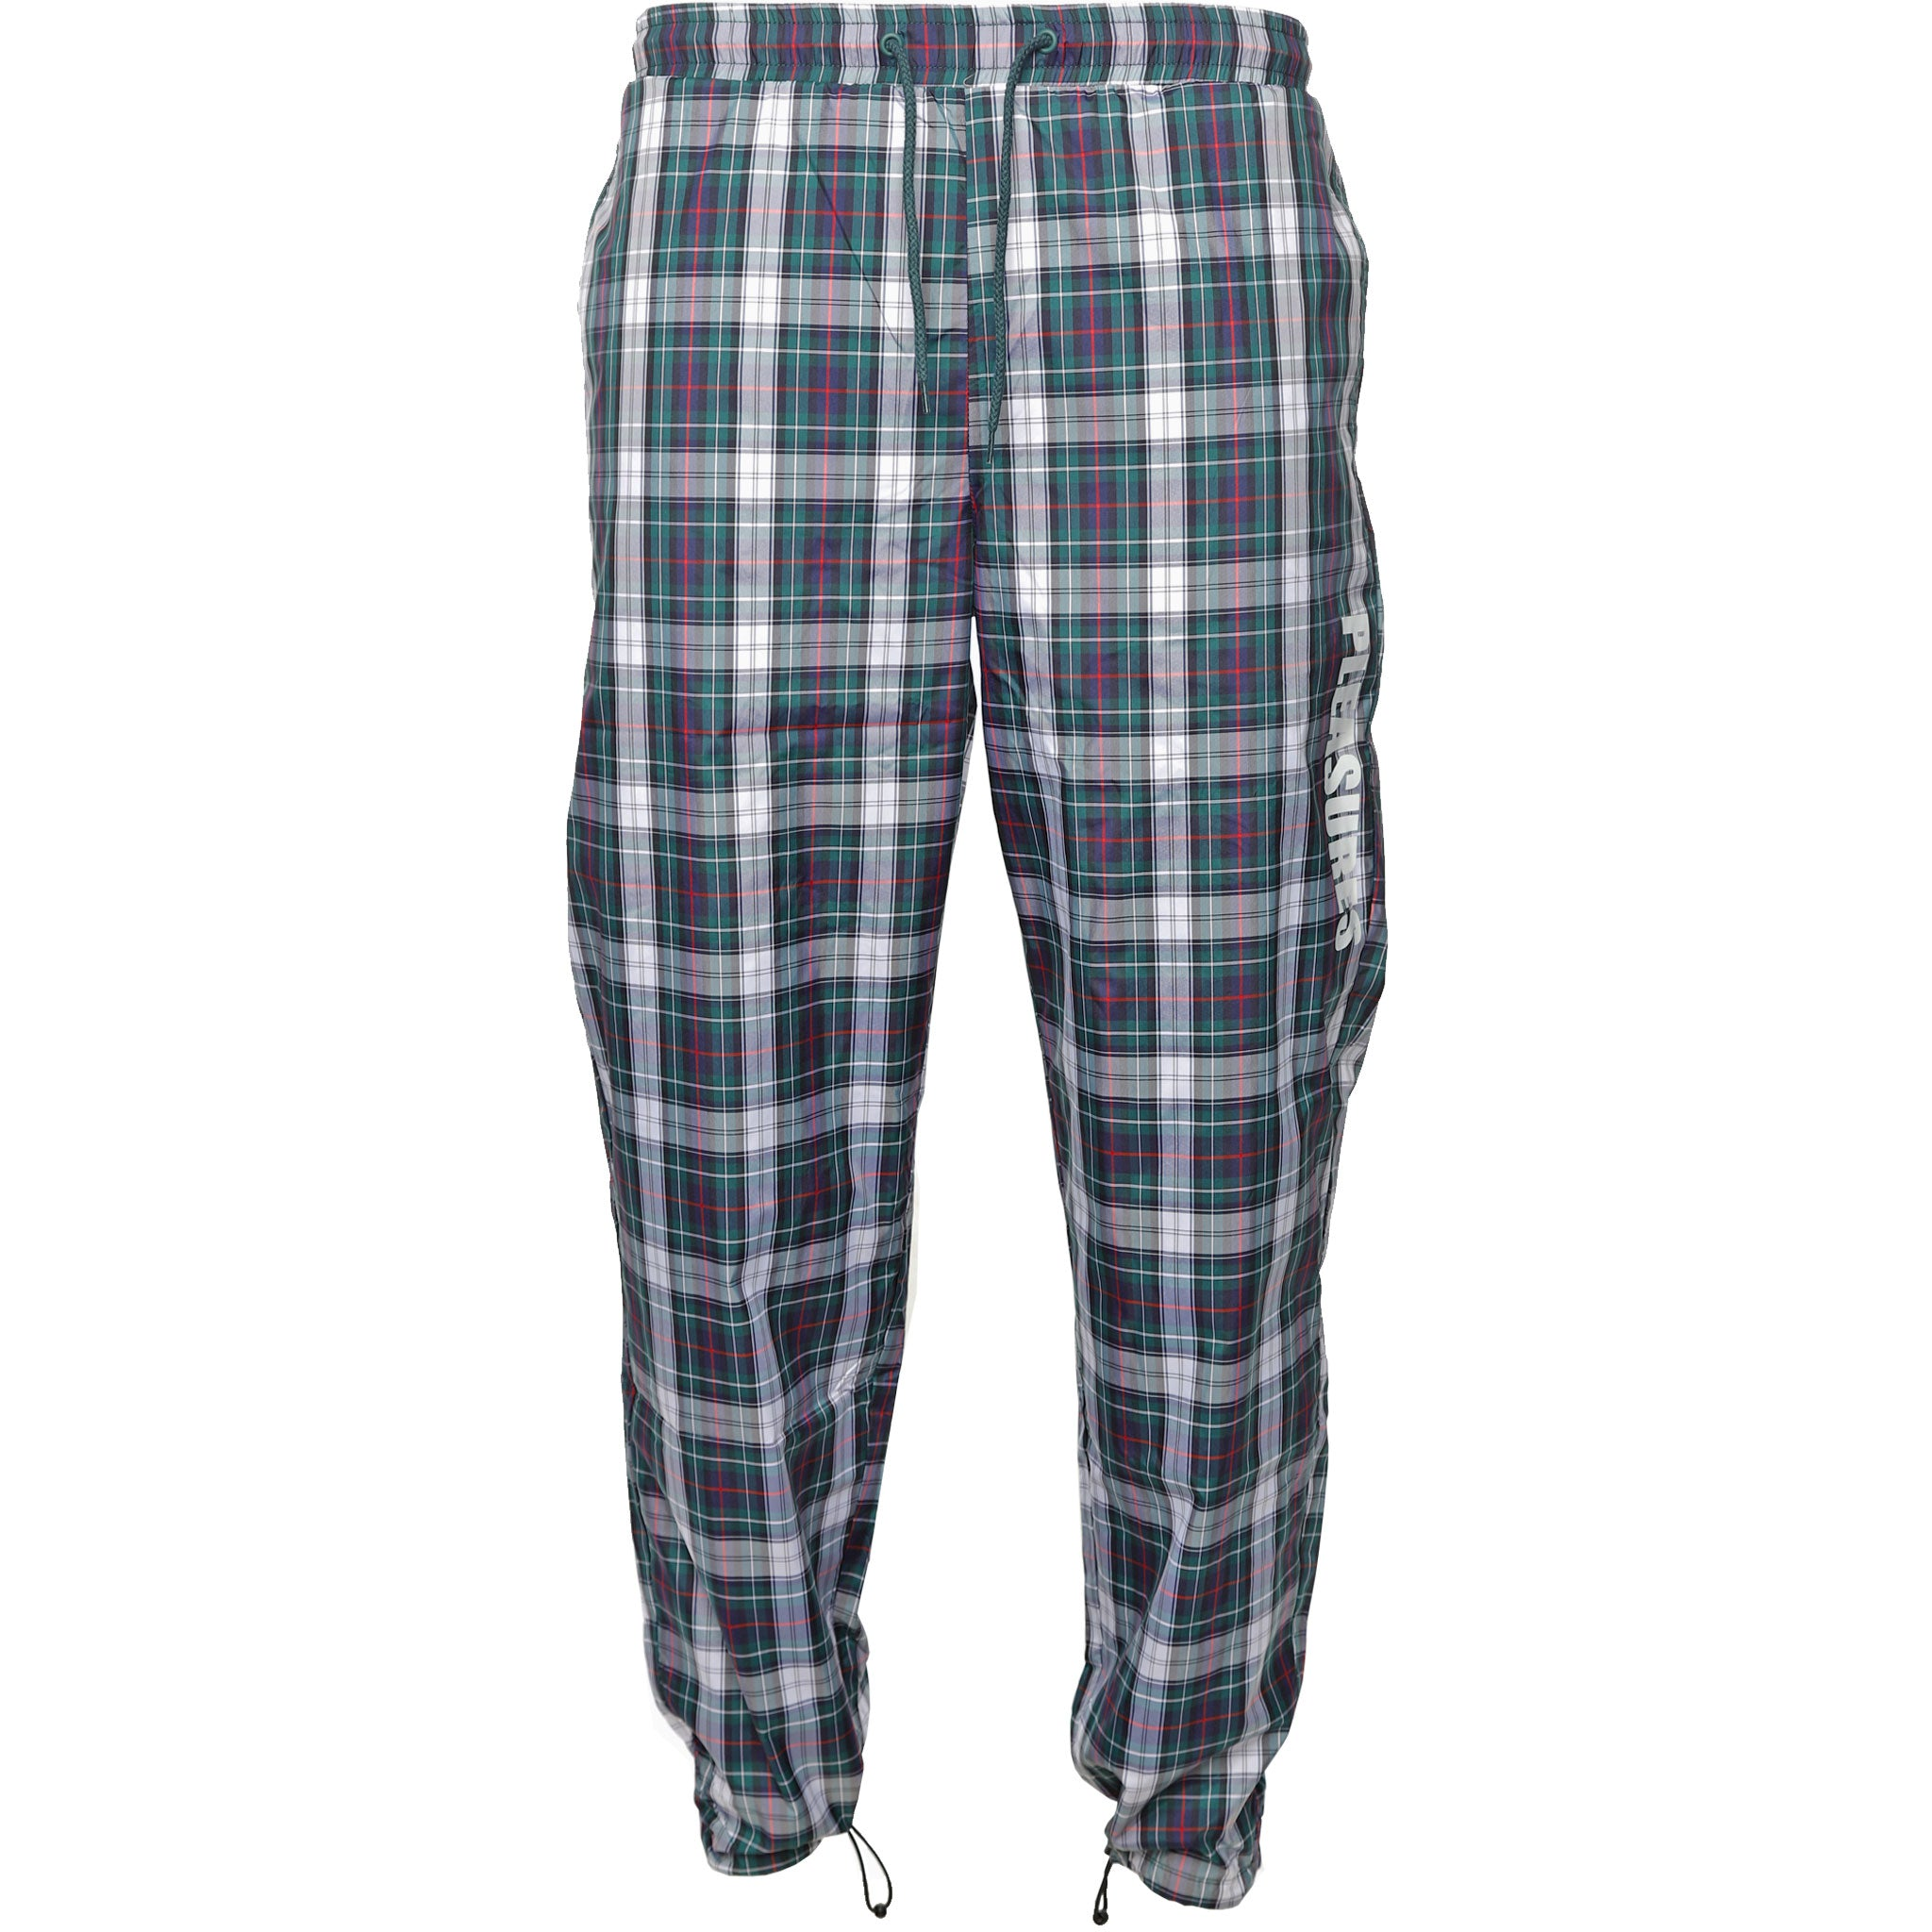 Green Plaid Athletic Track Pants